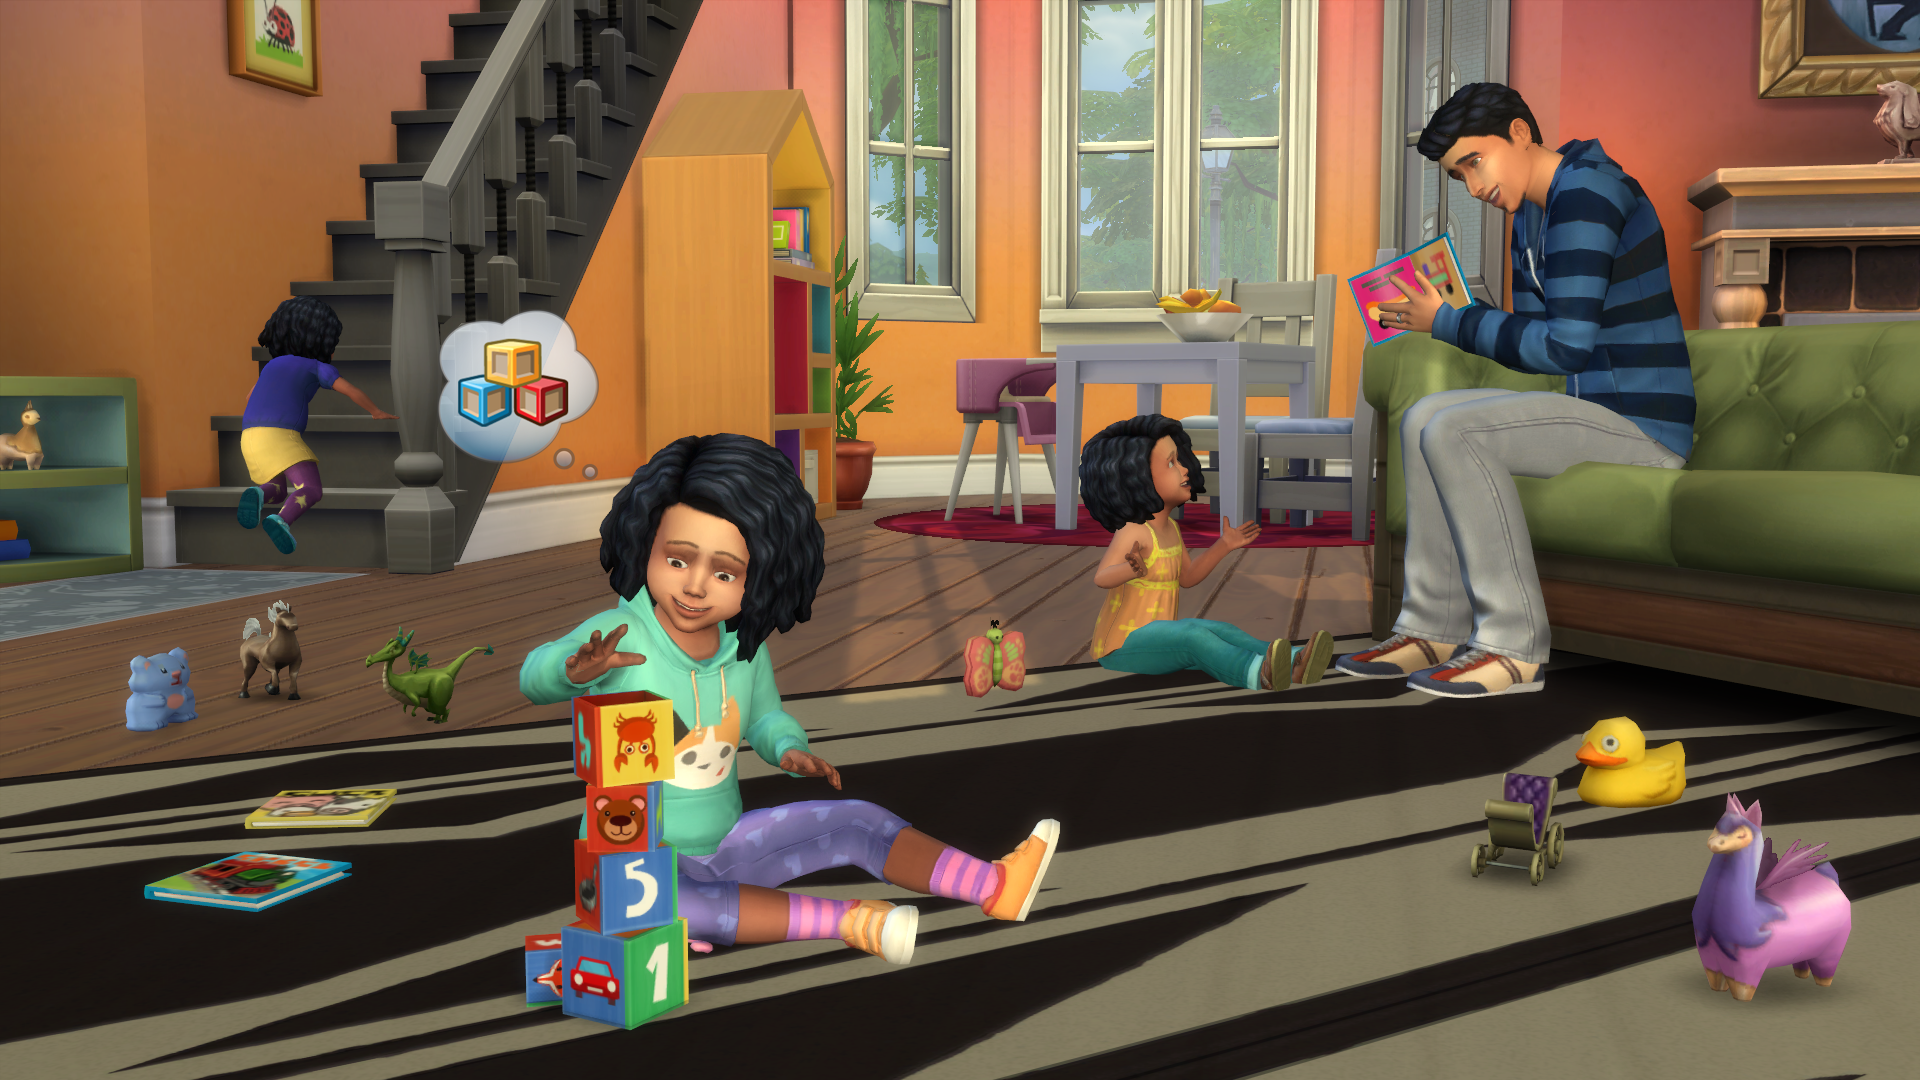 https://cdn.player.one/sites/player.one/files/2017/01/12/toddlers-sims.png